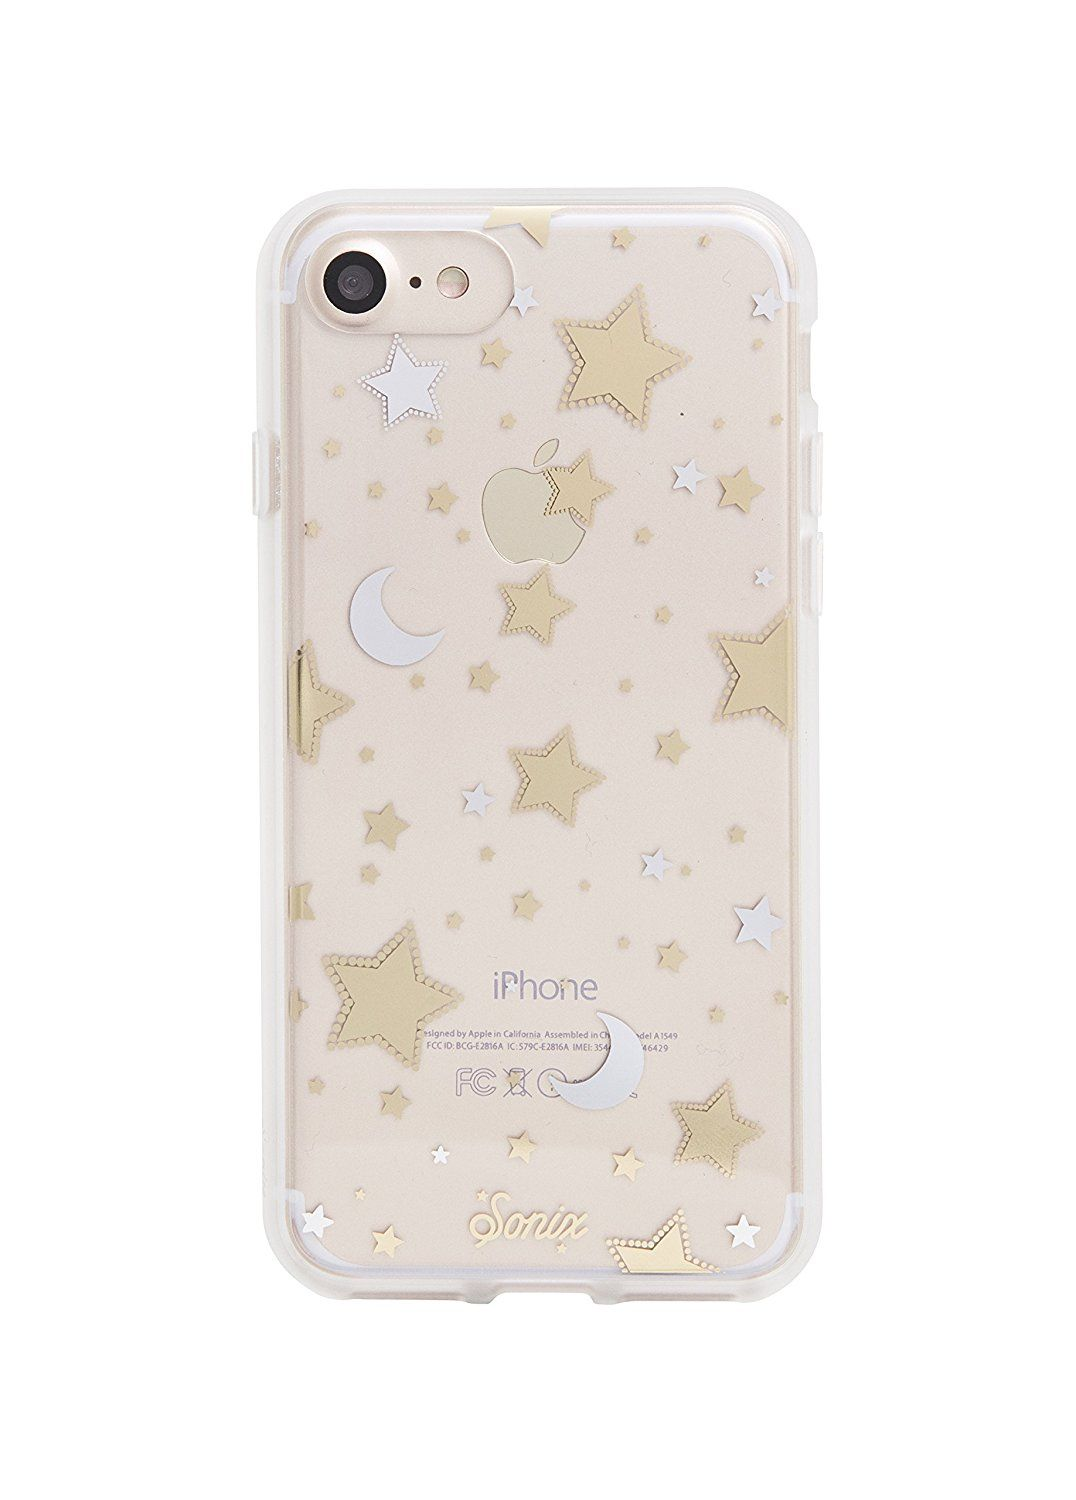 42f0f5bd74 iPhone 8 / iPhone 7, Sonix MILKY WAY Clear Coat Cell Phone Case (stars,  silver, gold) - Drop Test Certified - Retail Packaging - Sonix Clear Case  Series for ...